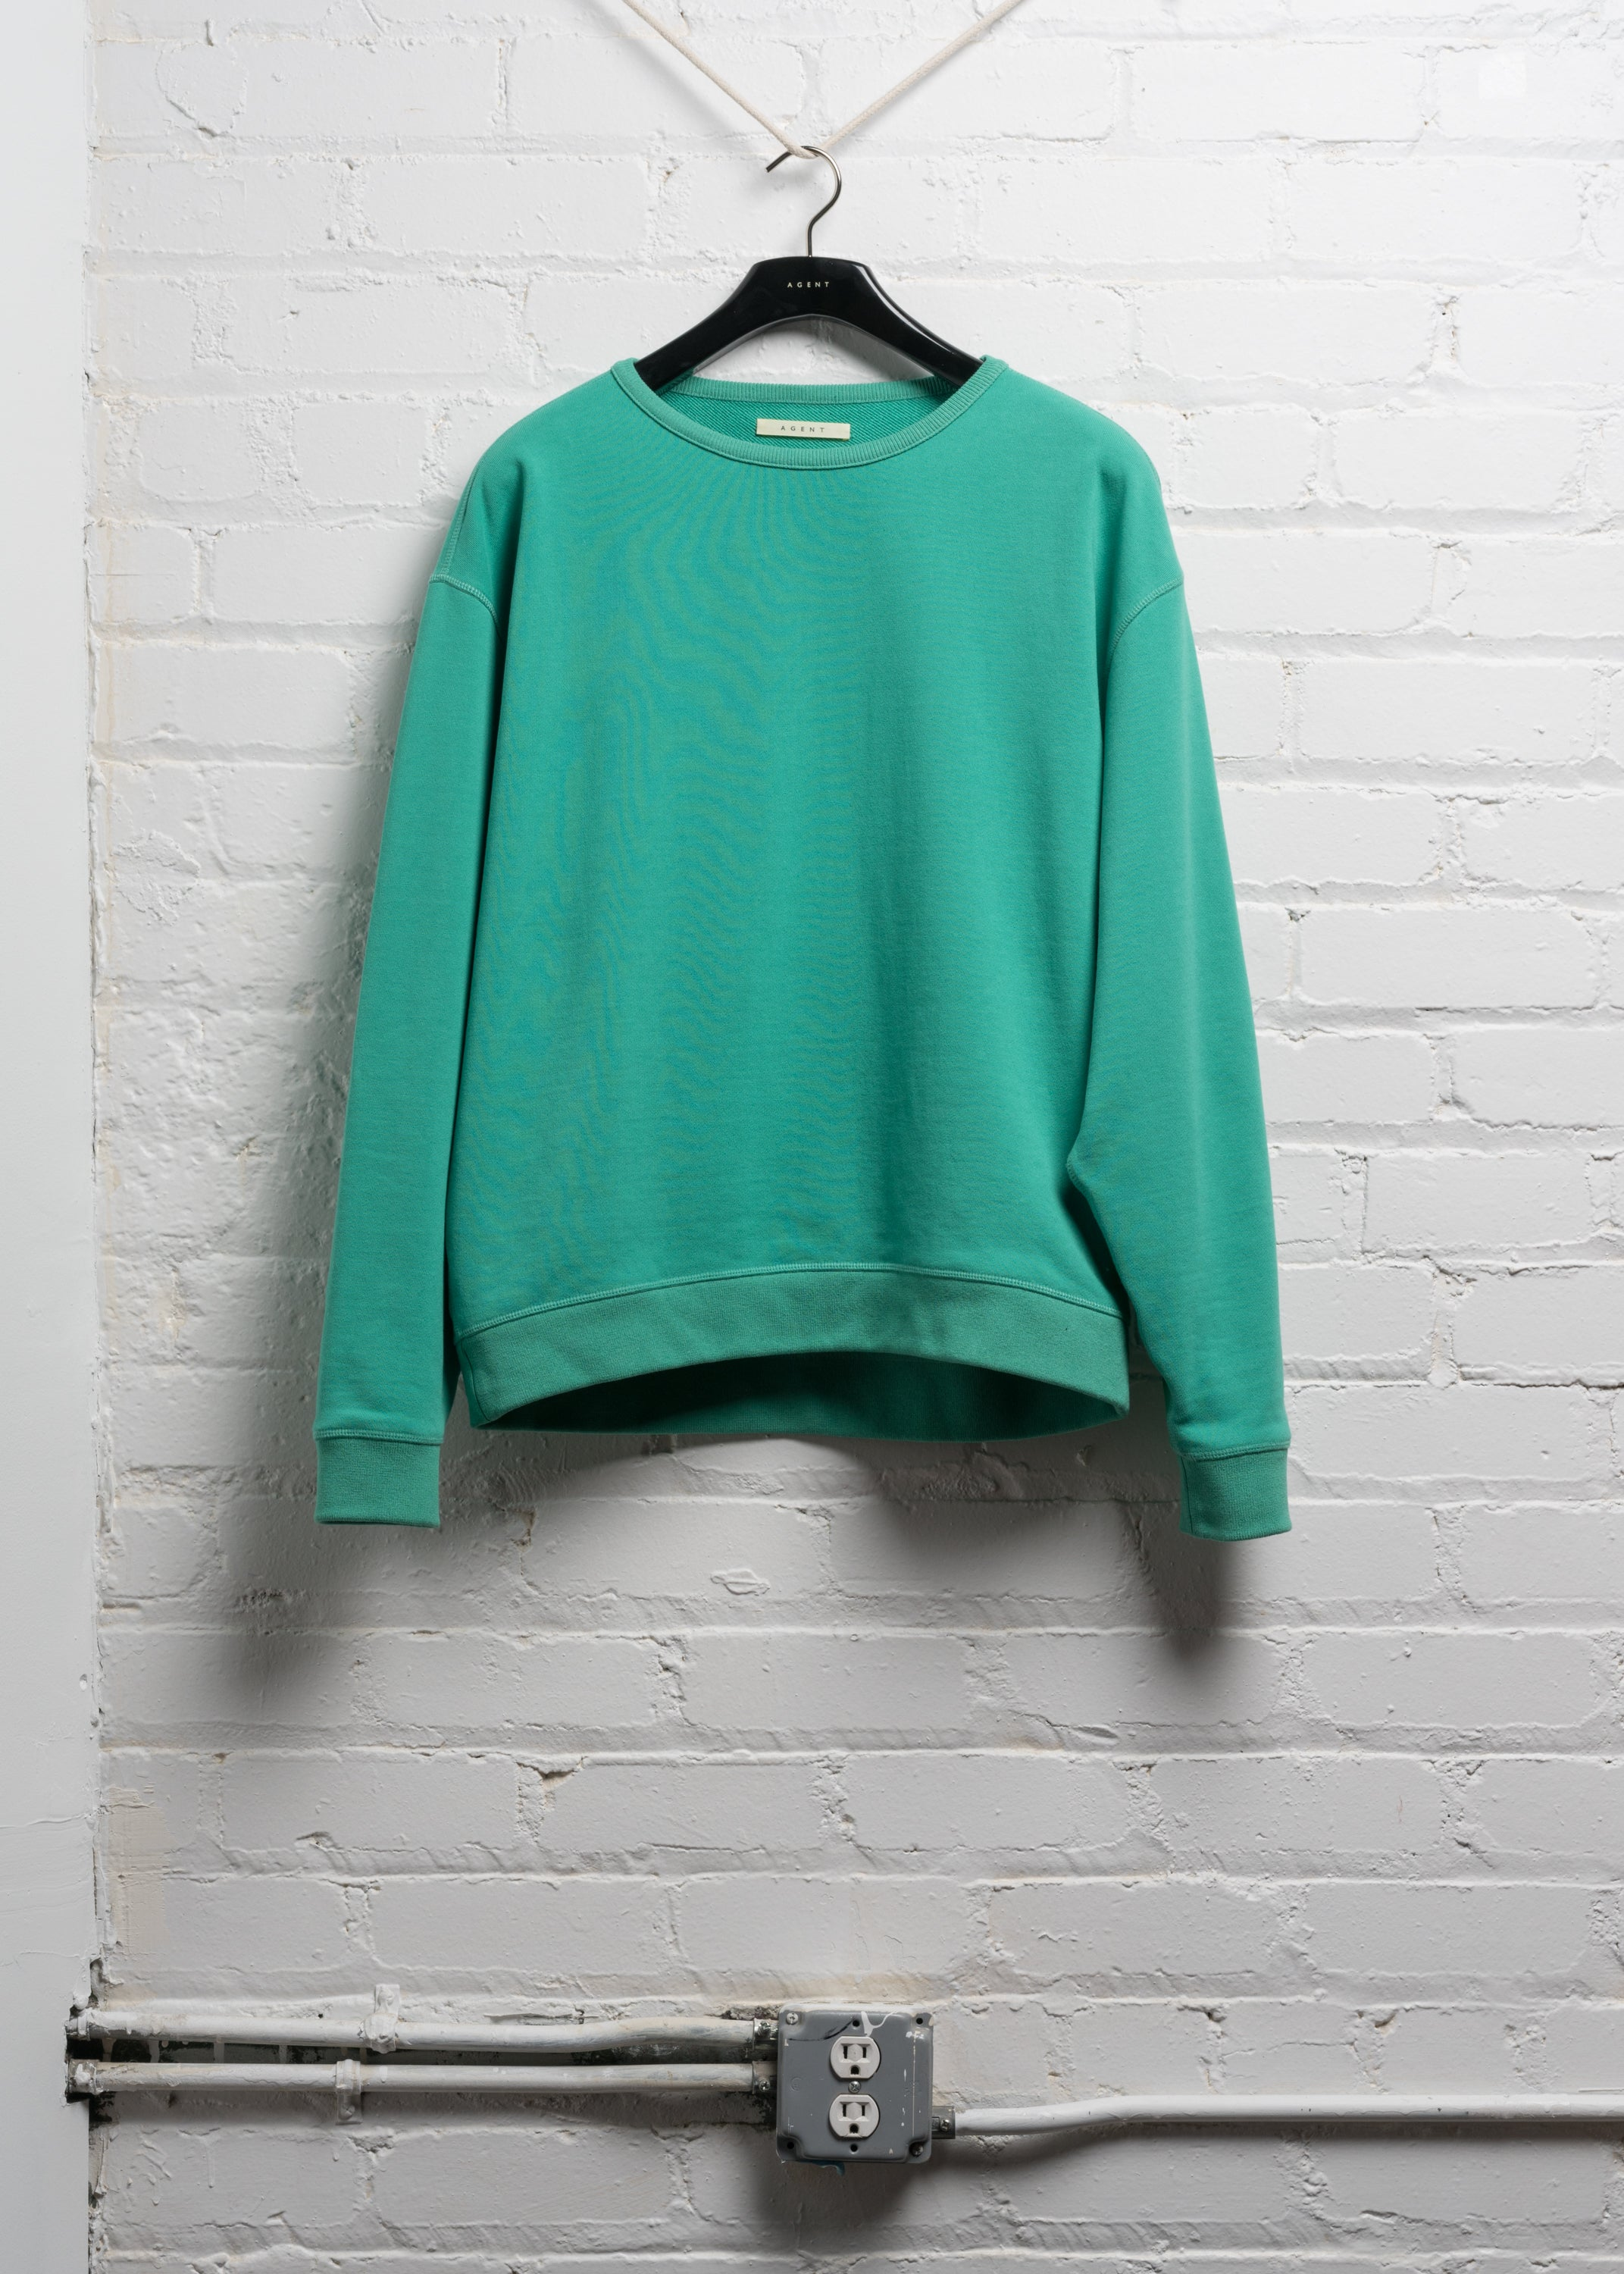 OVERSIZED CREW NECK SWEATER IN CHILI GREEN